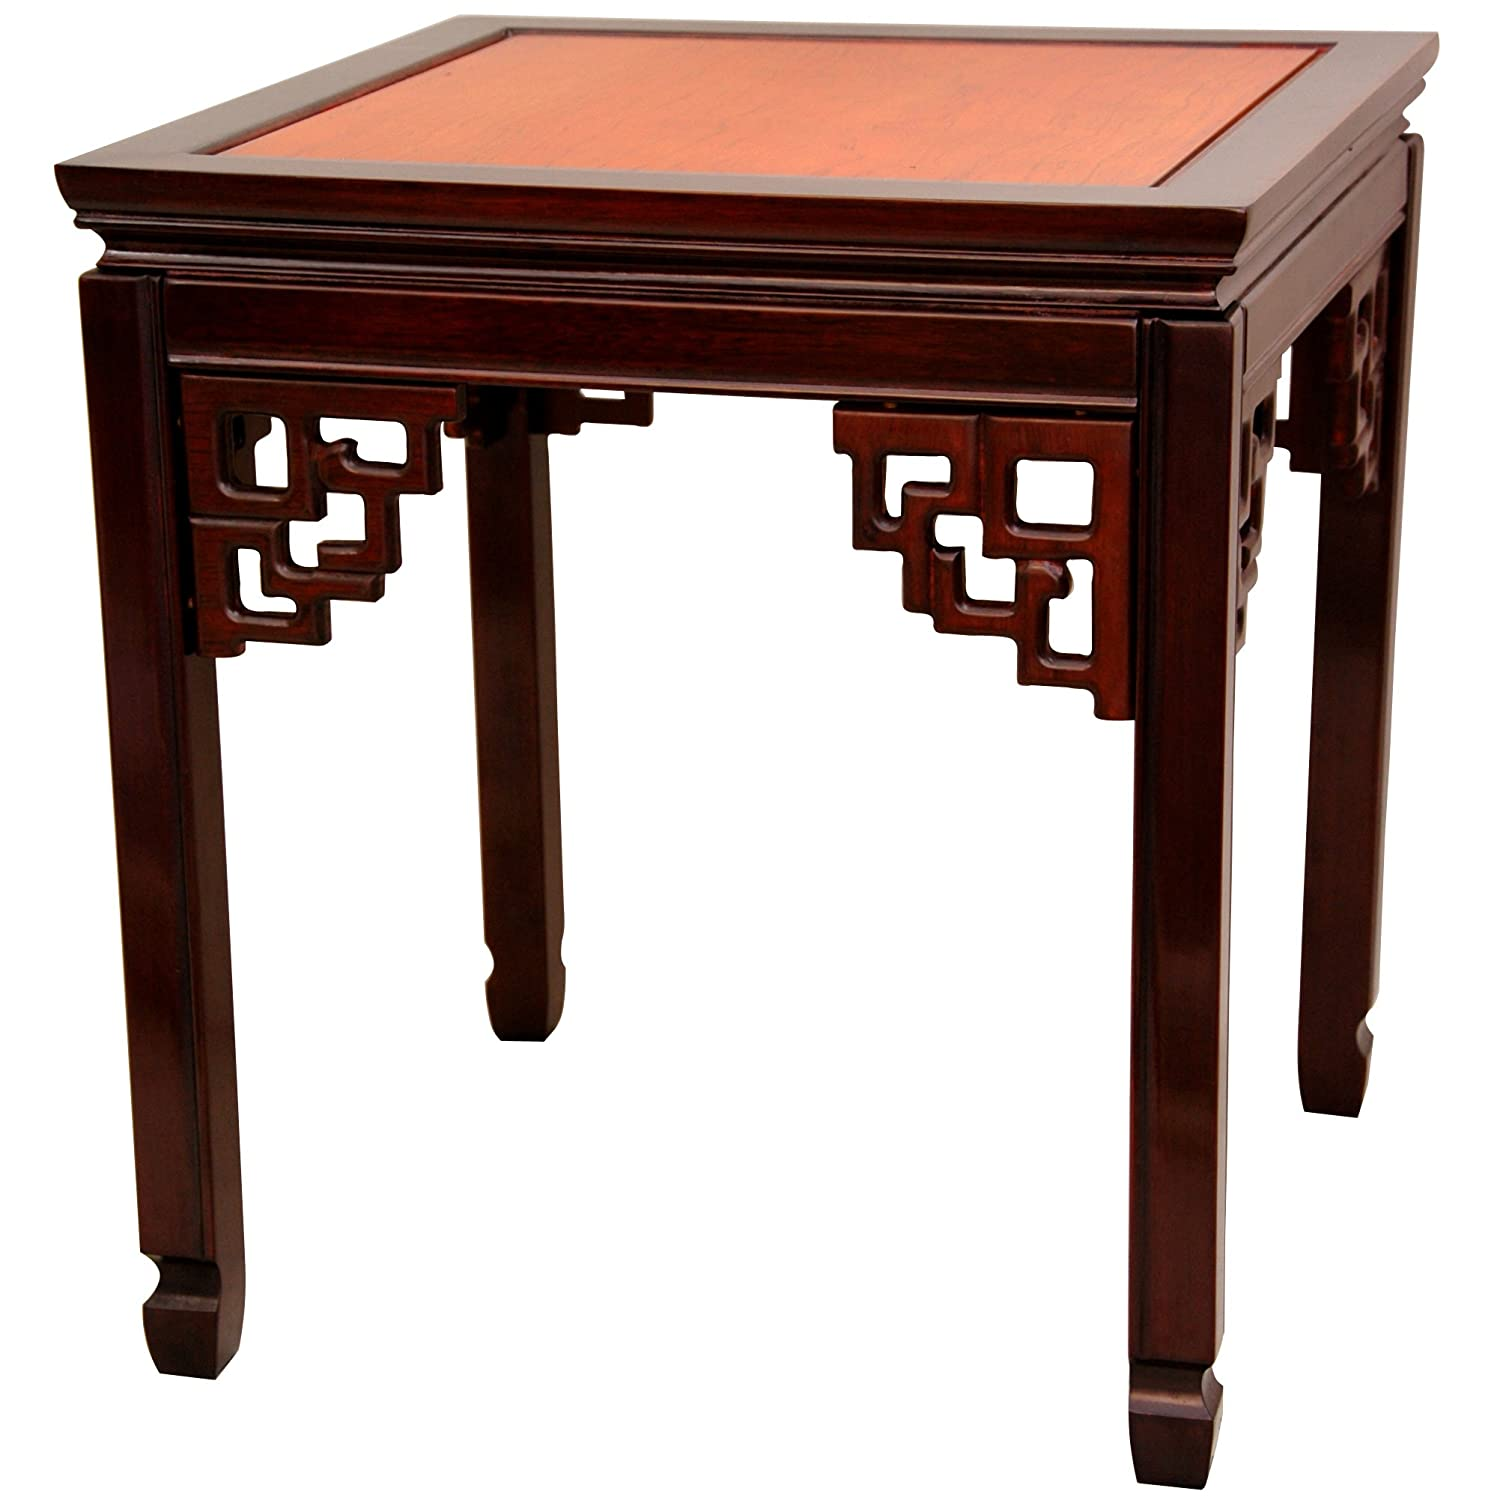 Oriental Furniture Rosewood Square Ming Table – Two-tone